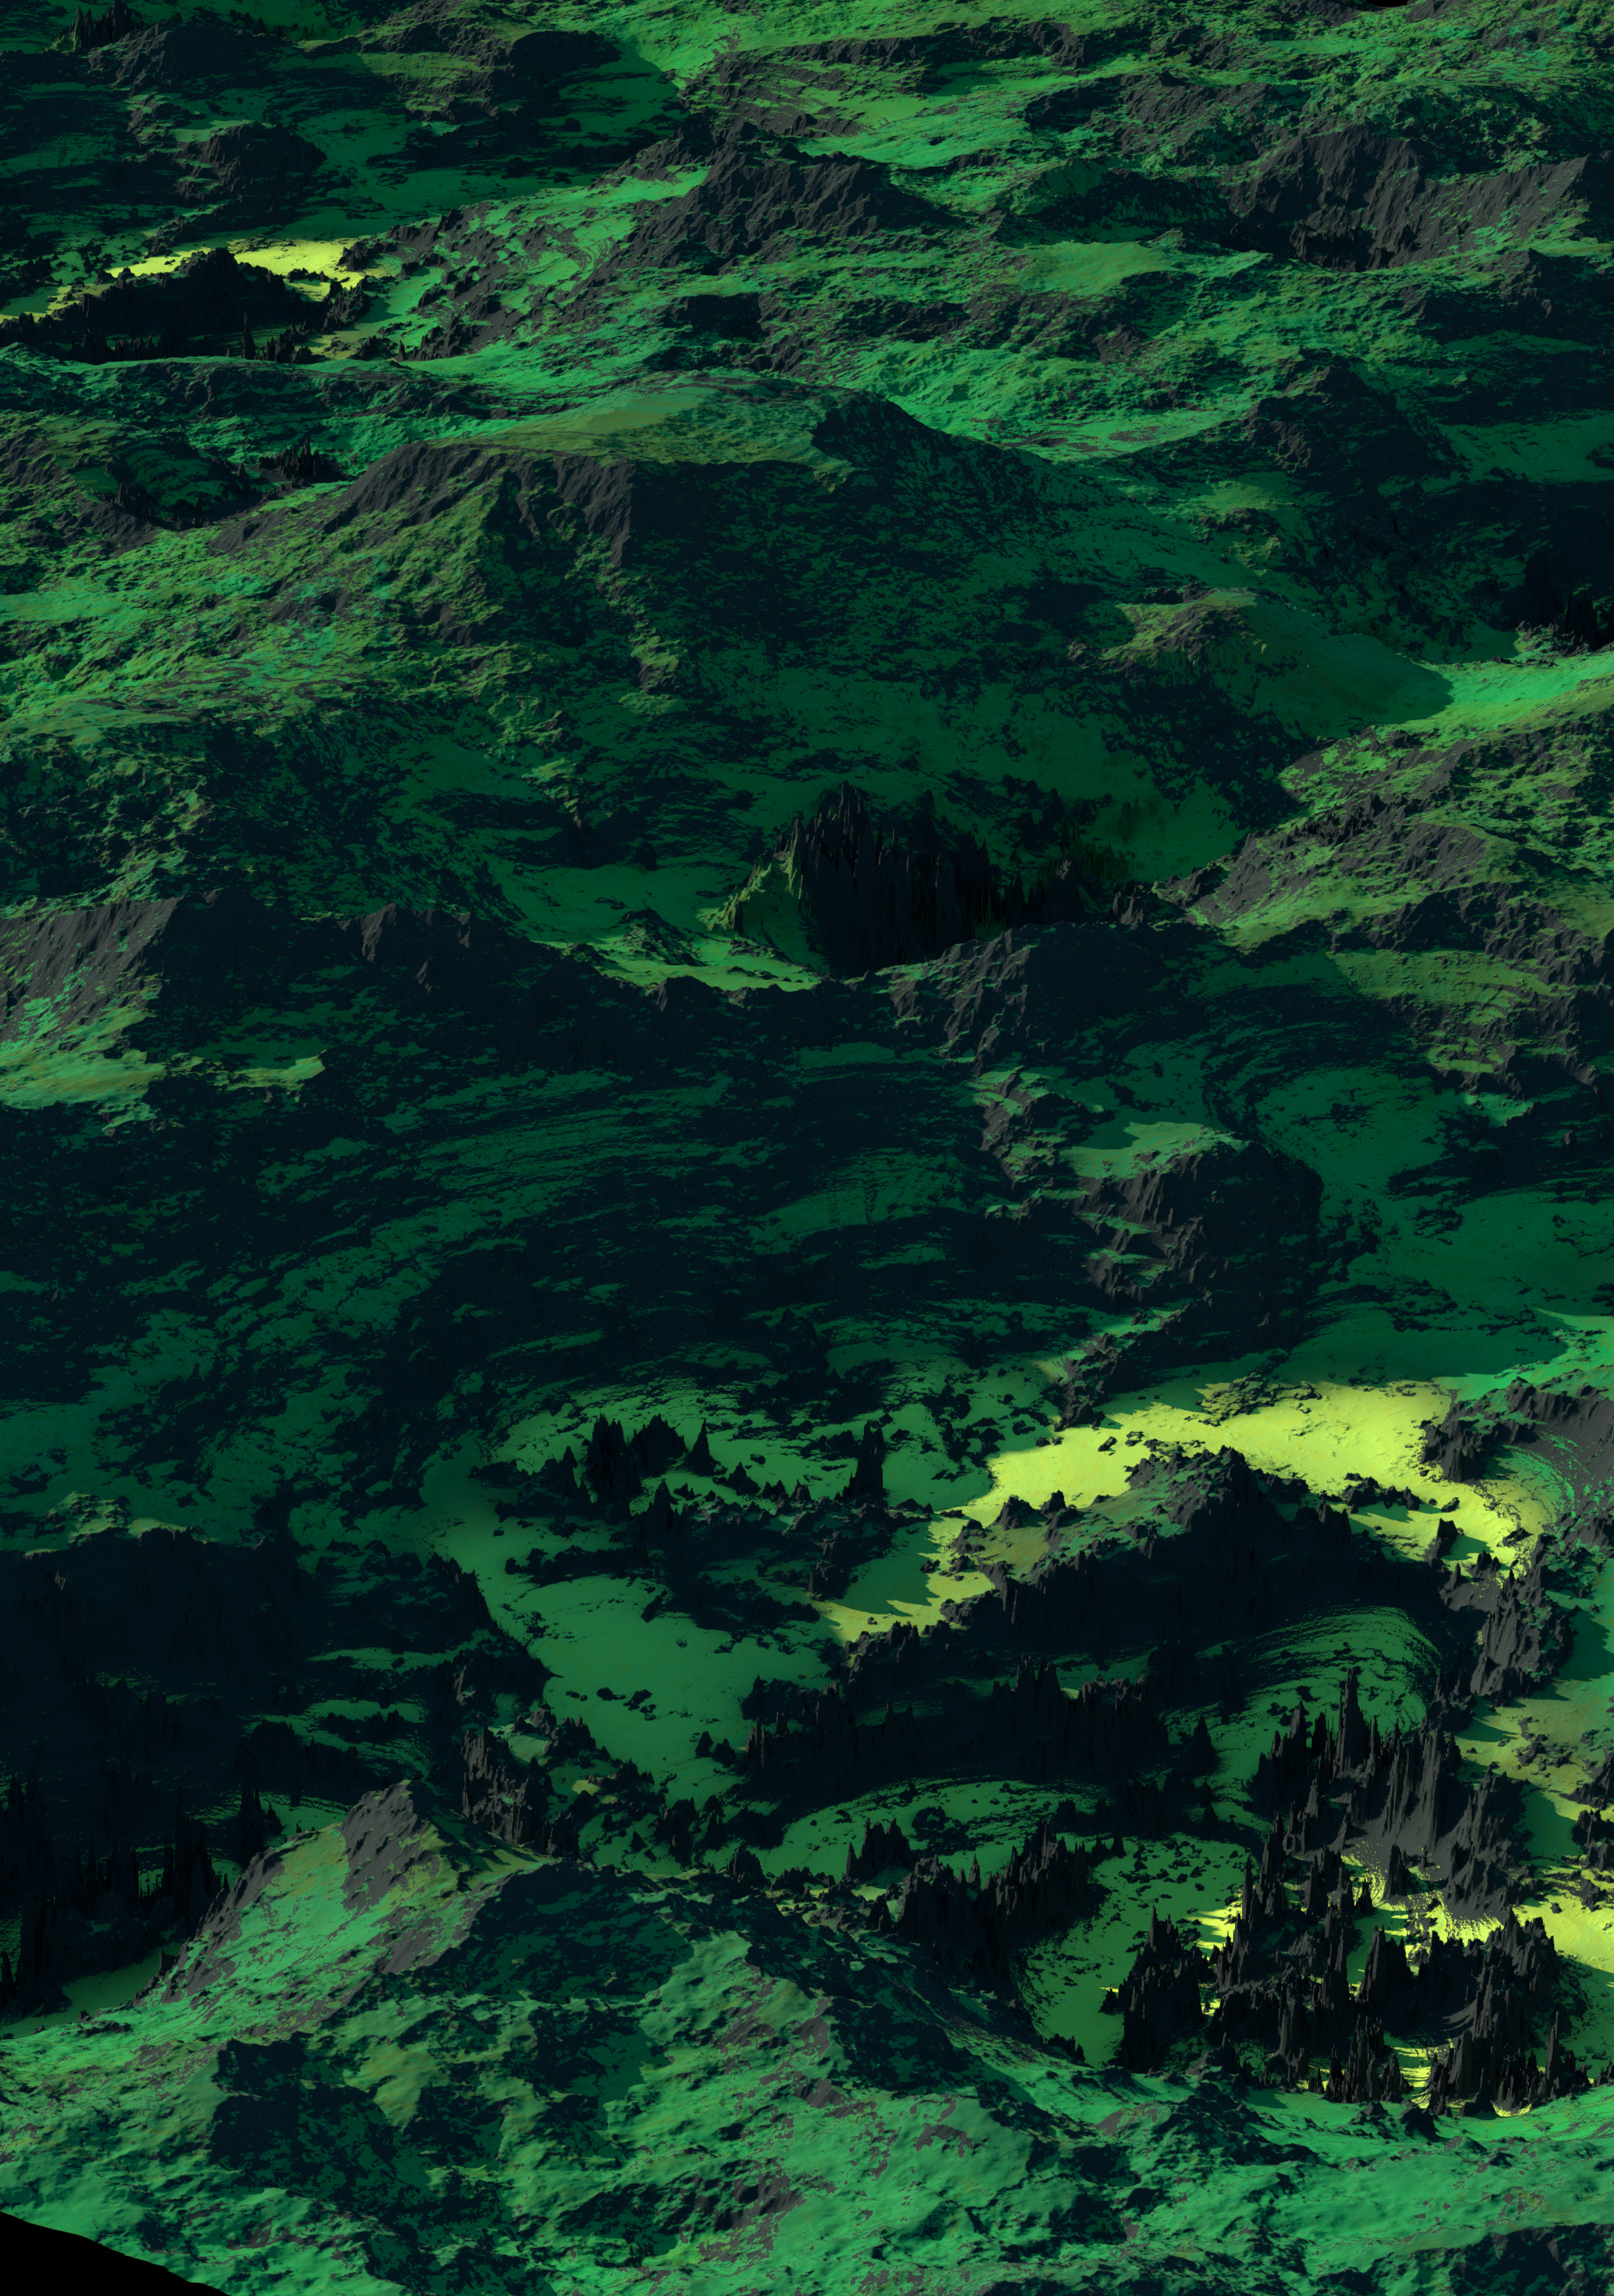 the raw landscape render created with world creator and rendered with octane.